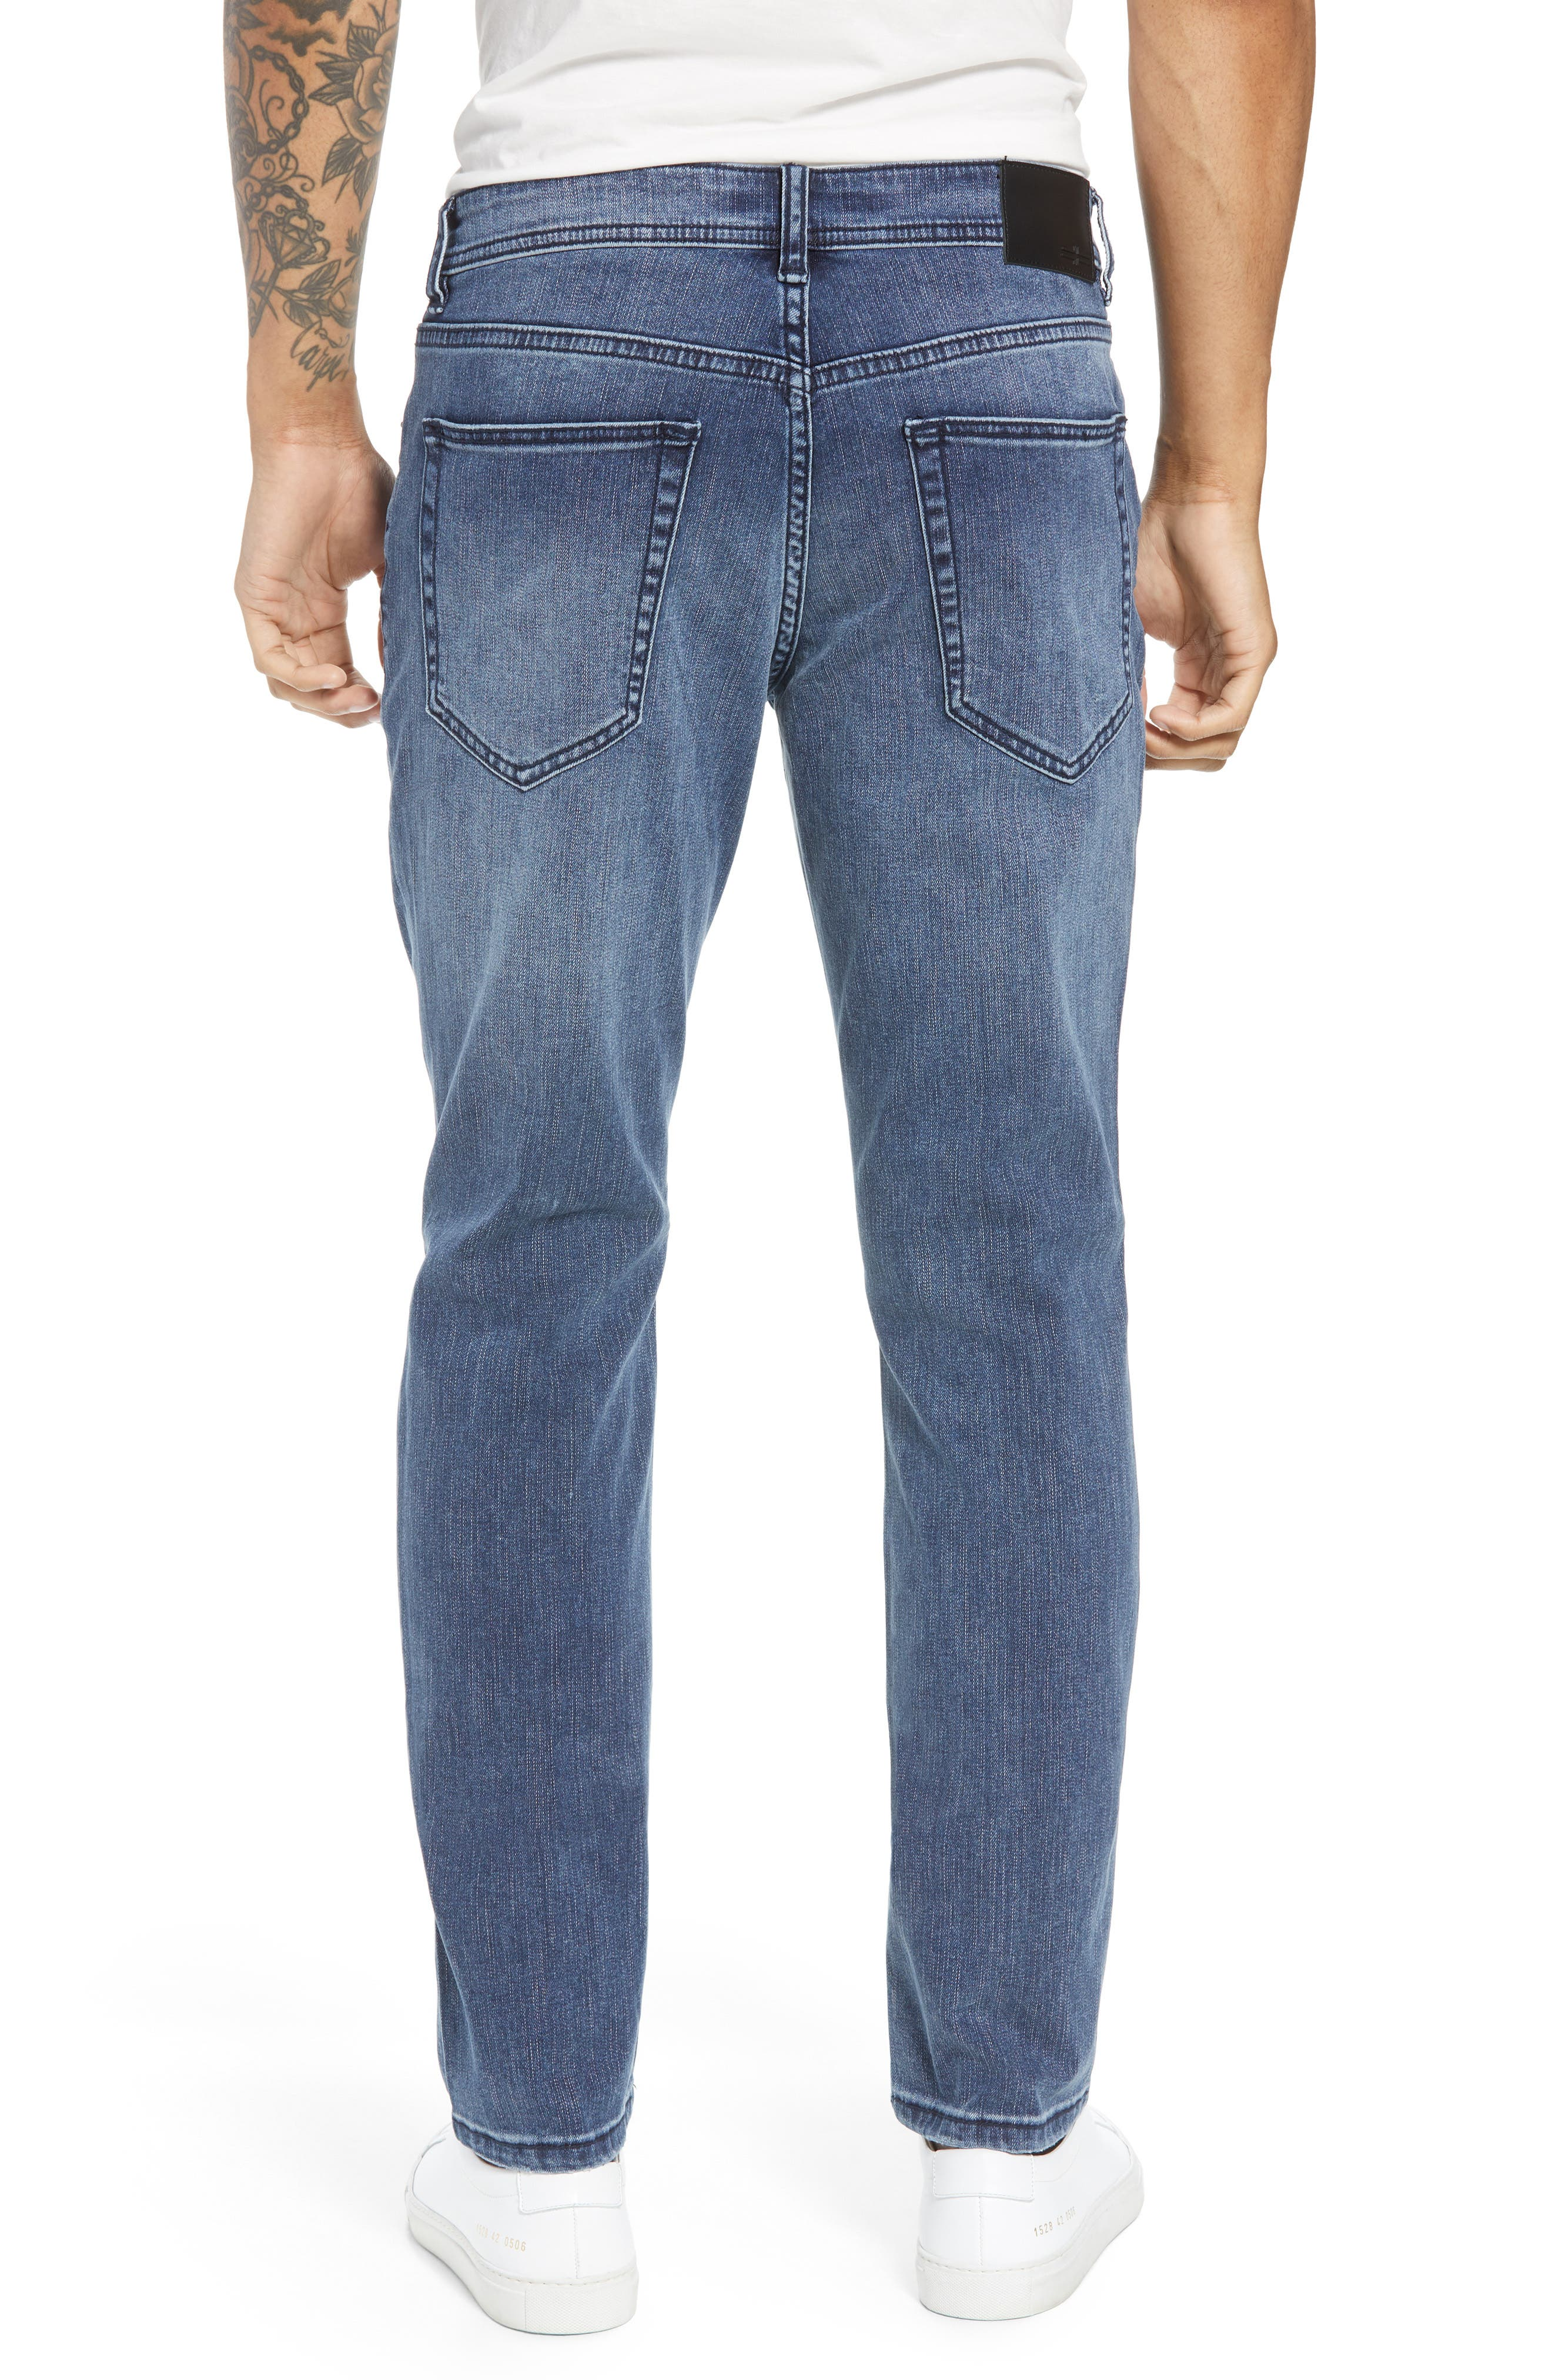 Jeans Co. Slim Straight Leg Jeans,                             Alternate thumbnail 2, color,                             403